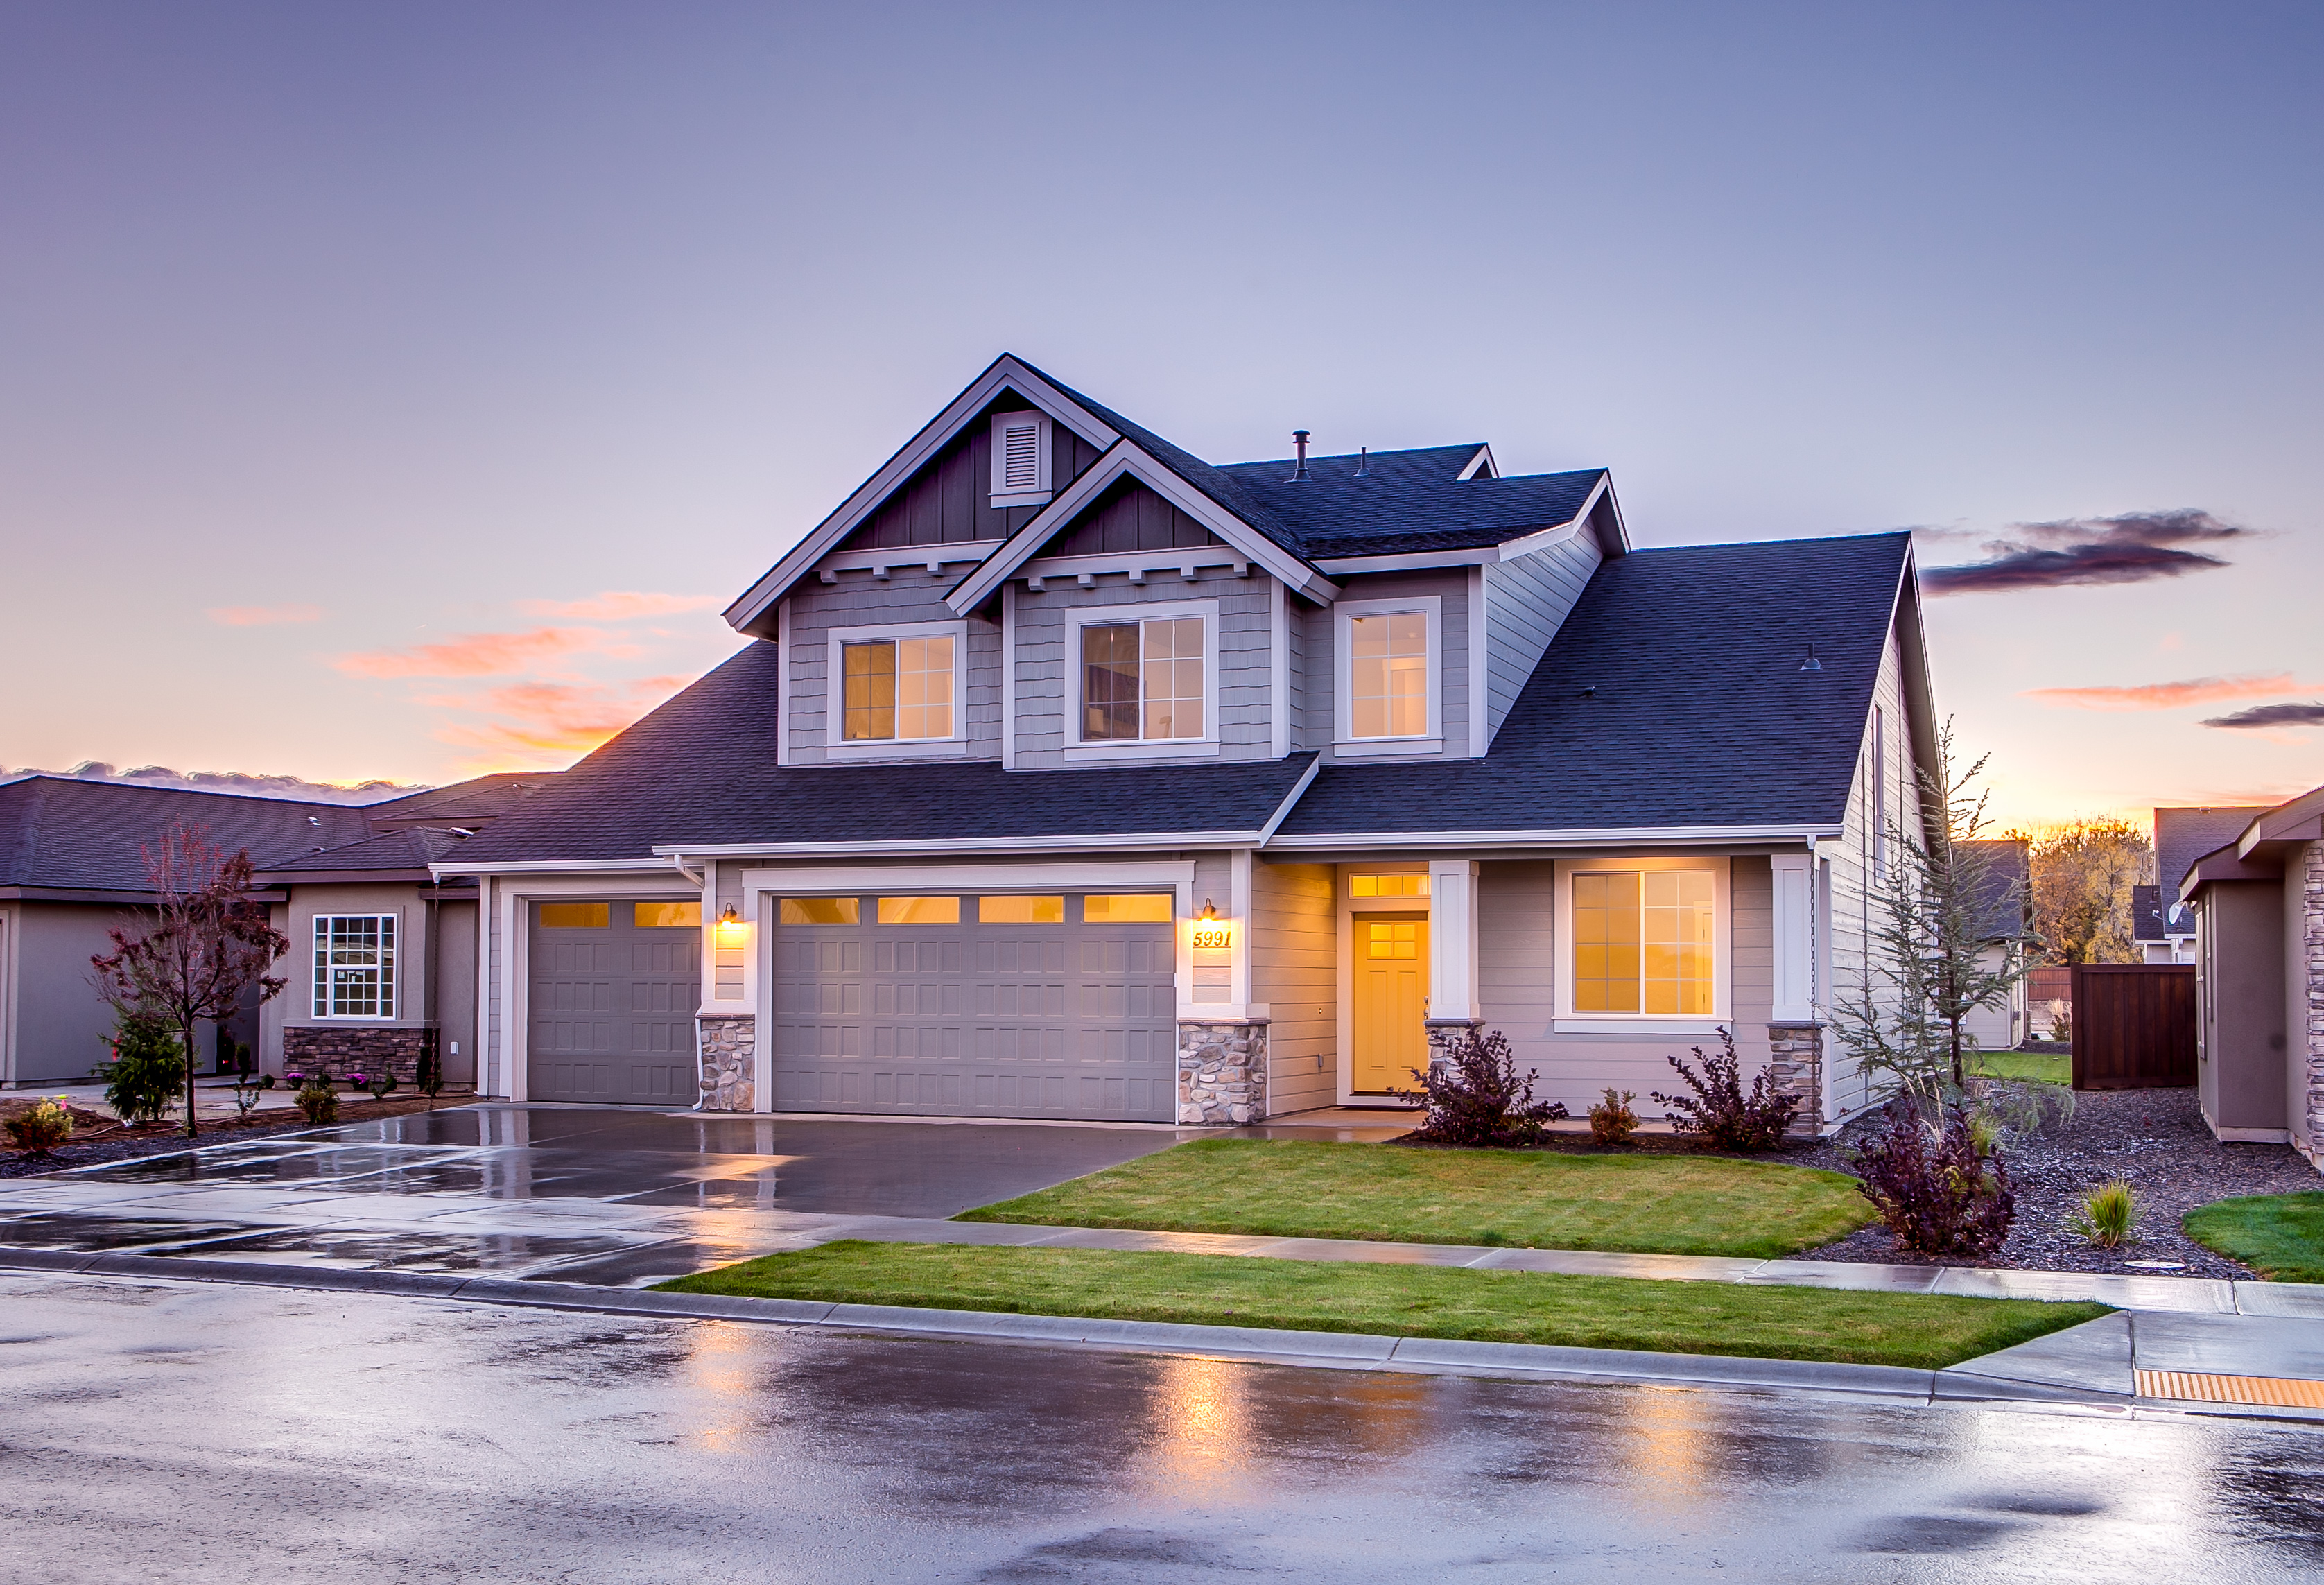 Canva - Blue and Gray Concrete House With Attic during Twilight